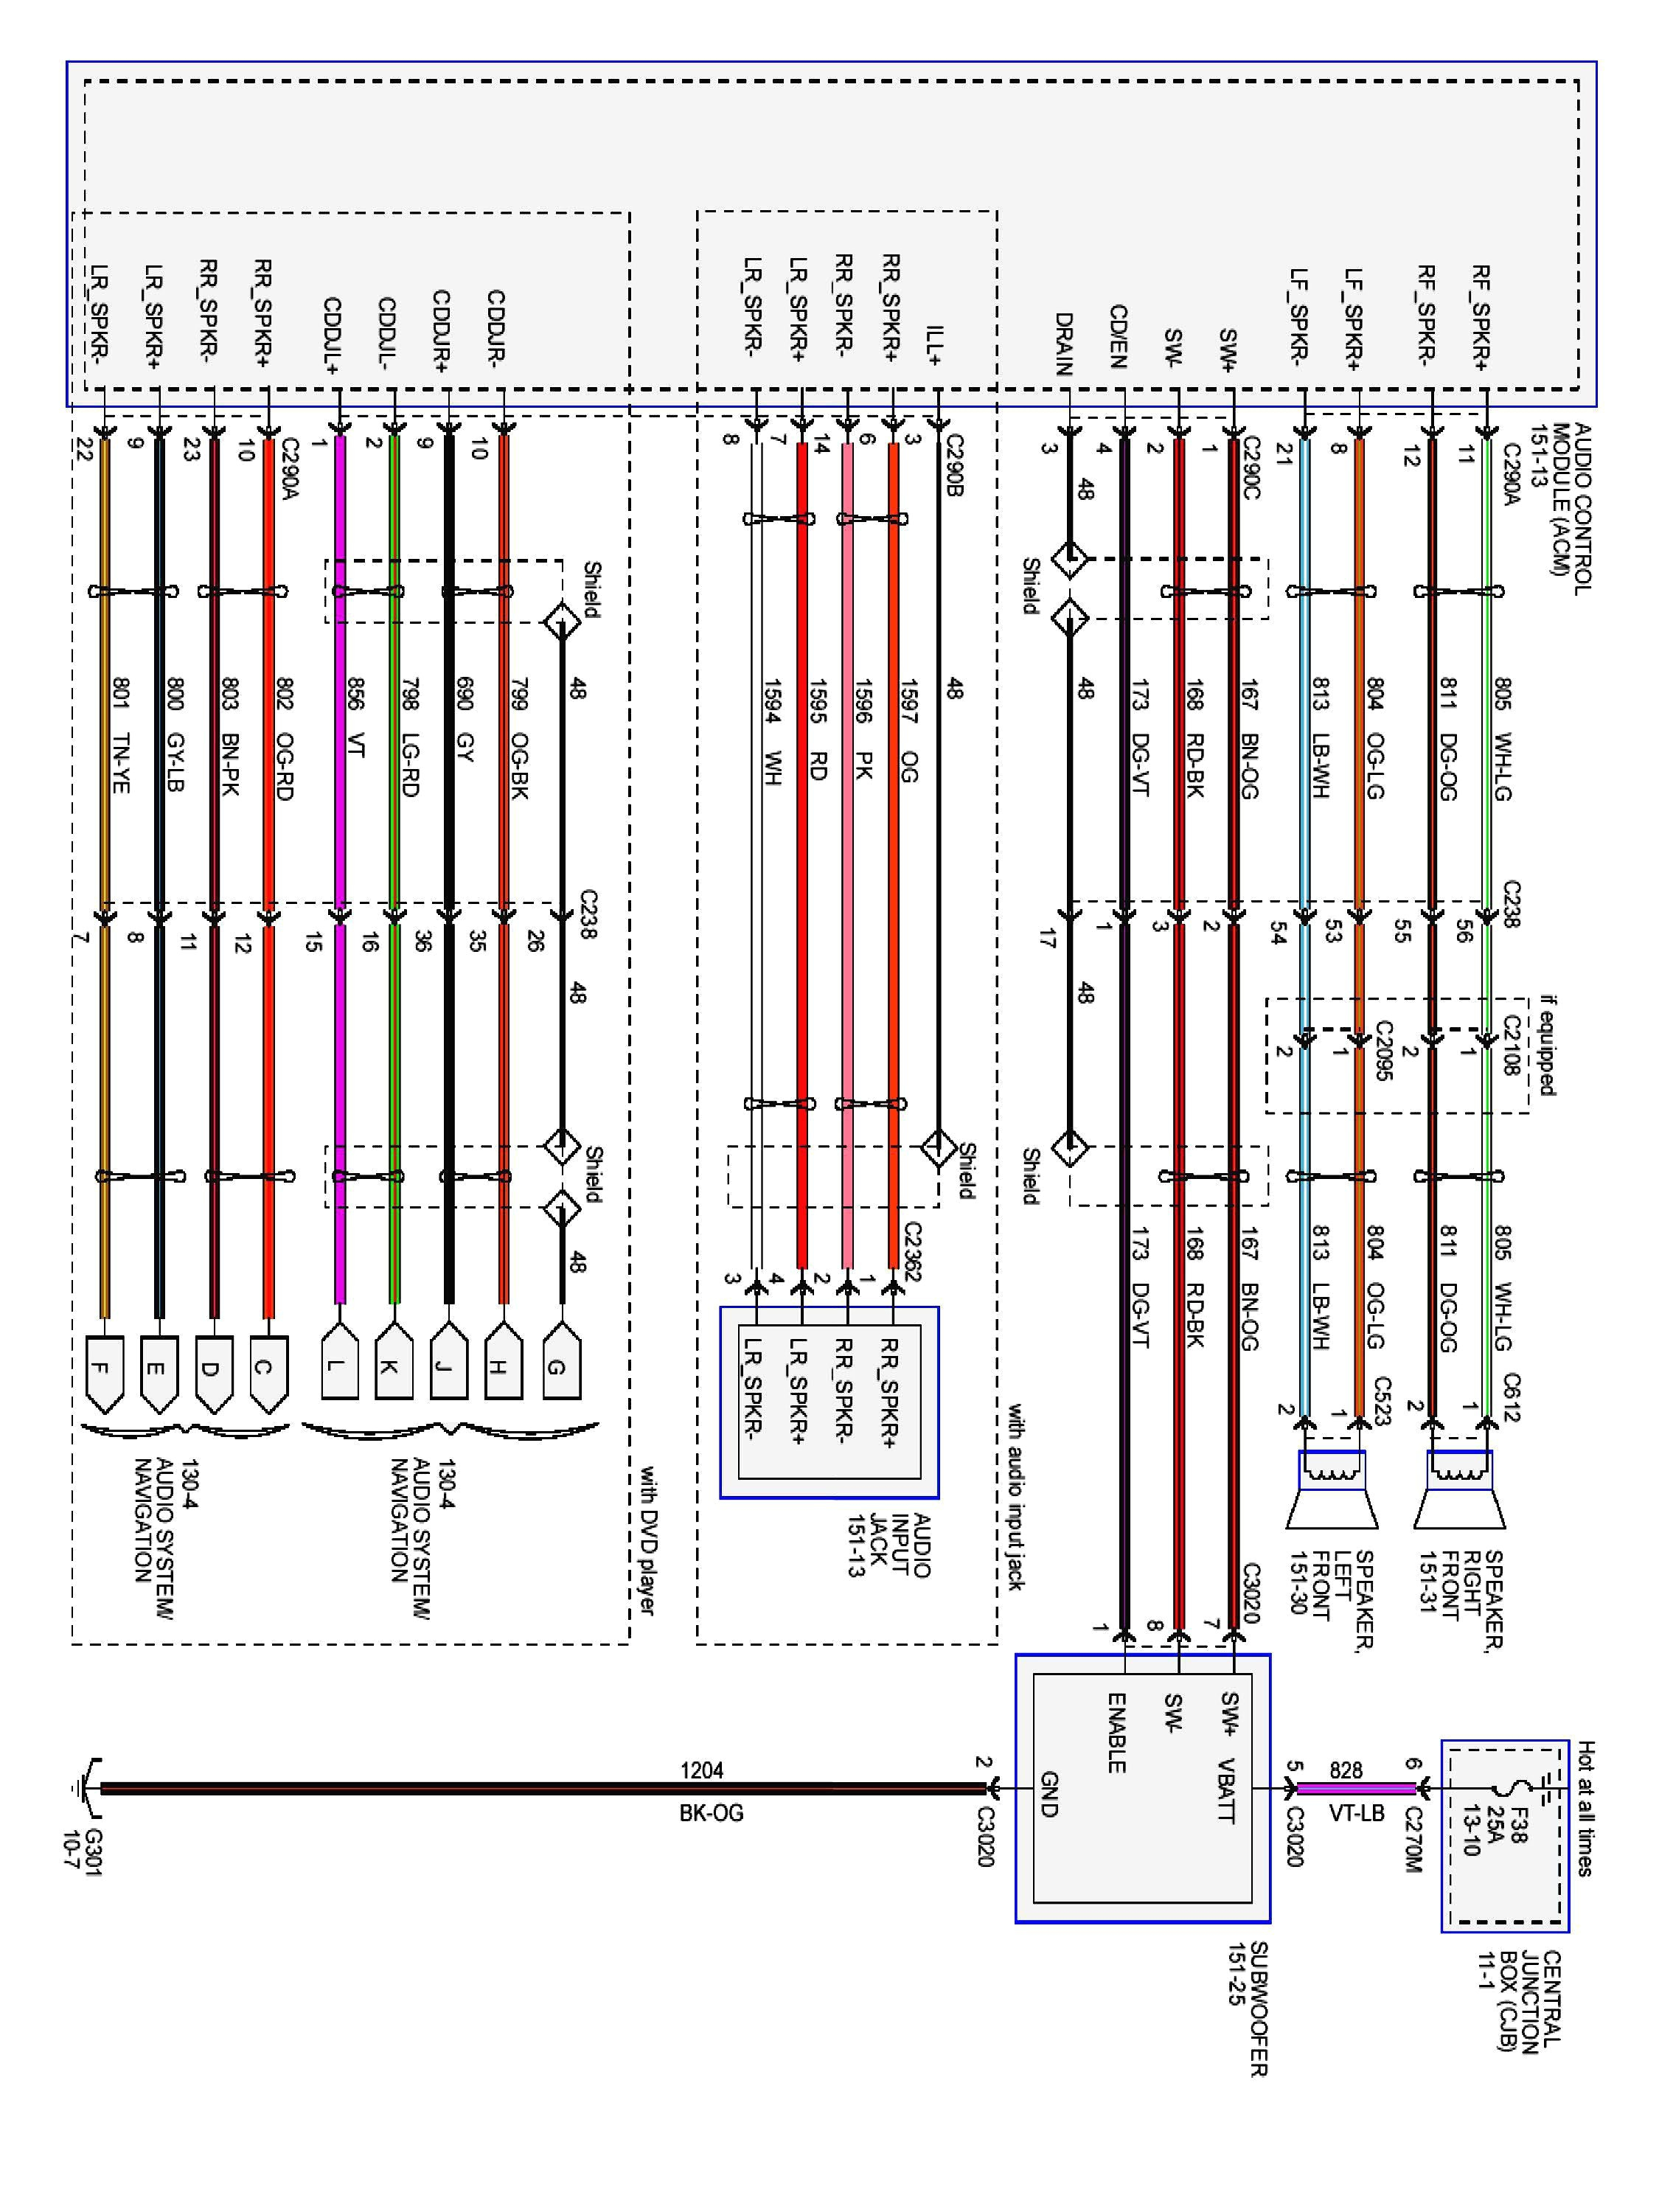 kenwood ddx470 wiring harness wiring diagram rh a1 ansolsolder co Kenwood DDX6019 Wiring-Diagram Kenwood DDX470 Accessories